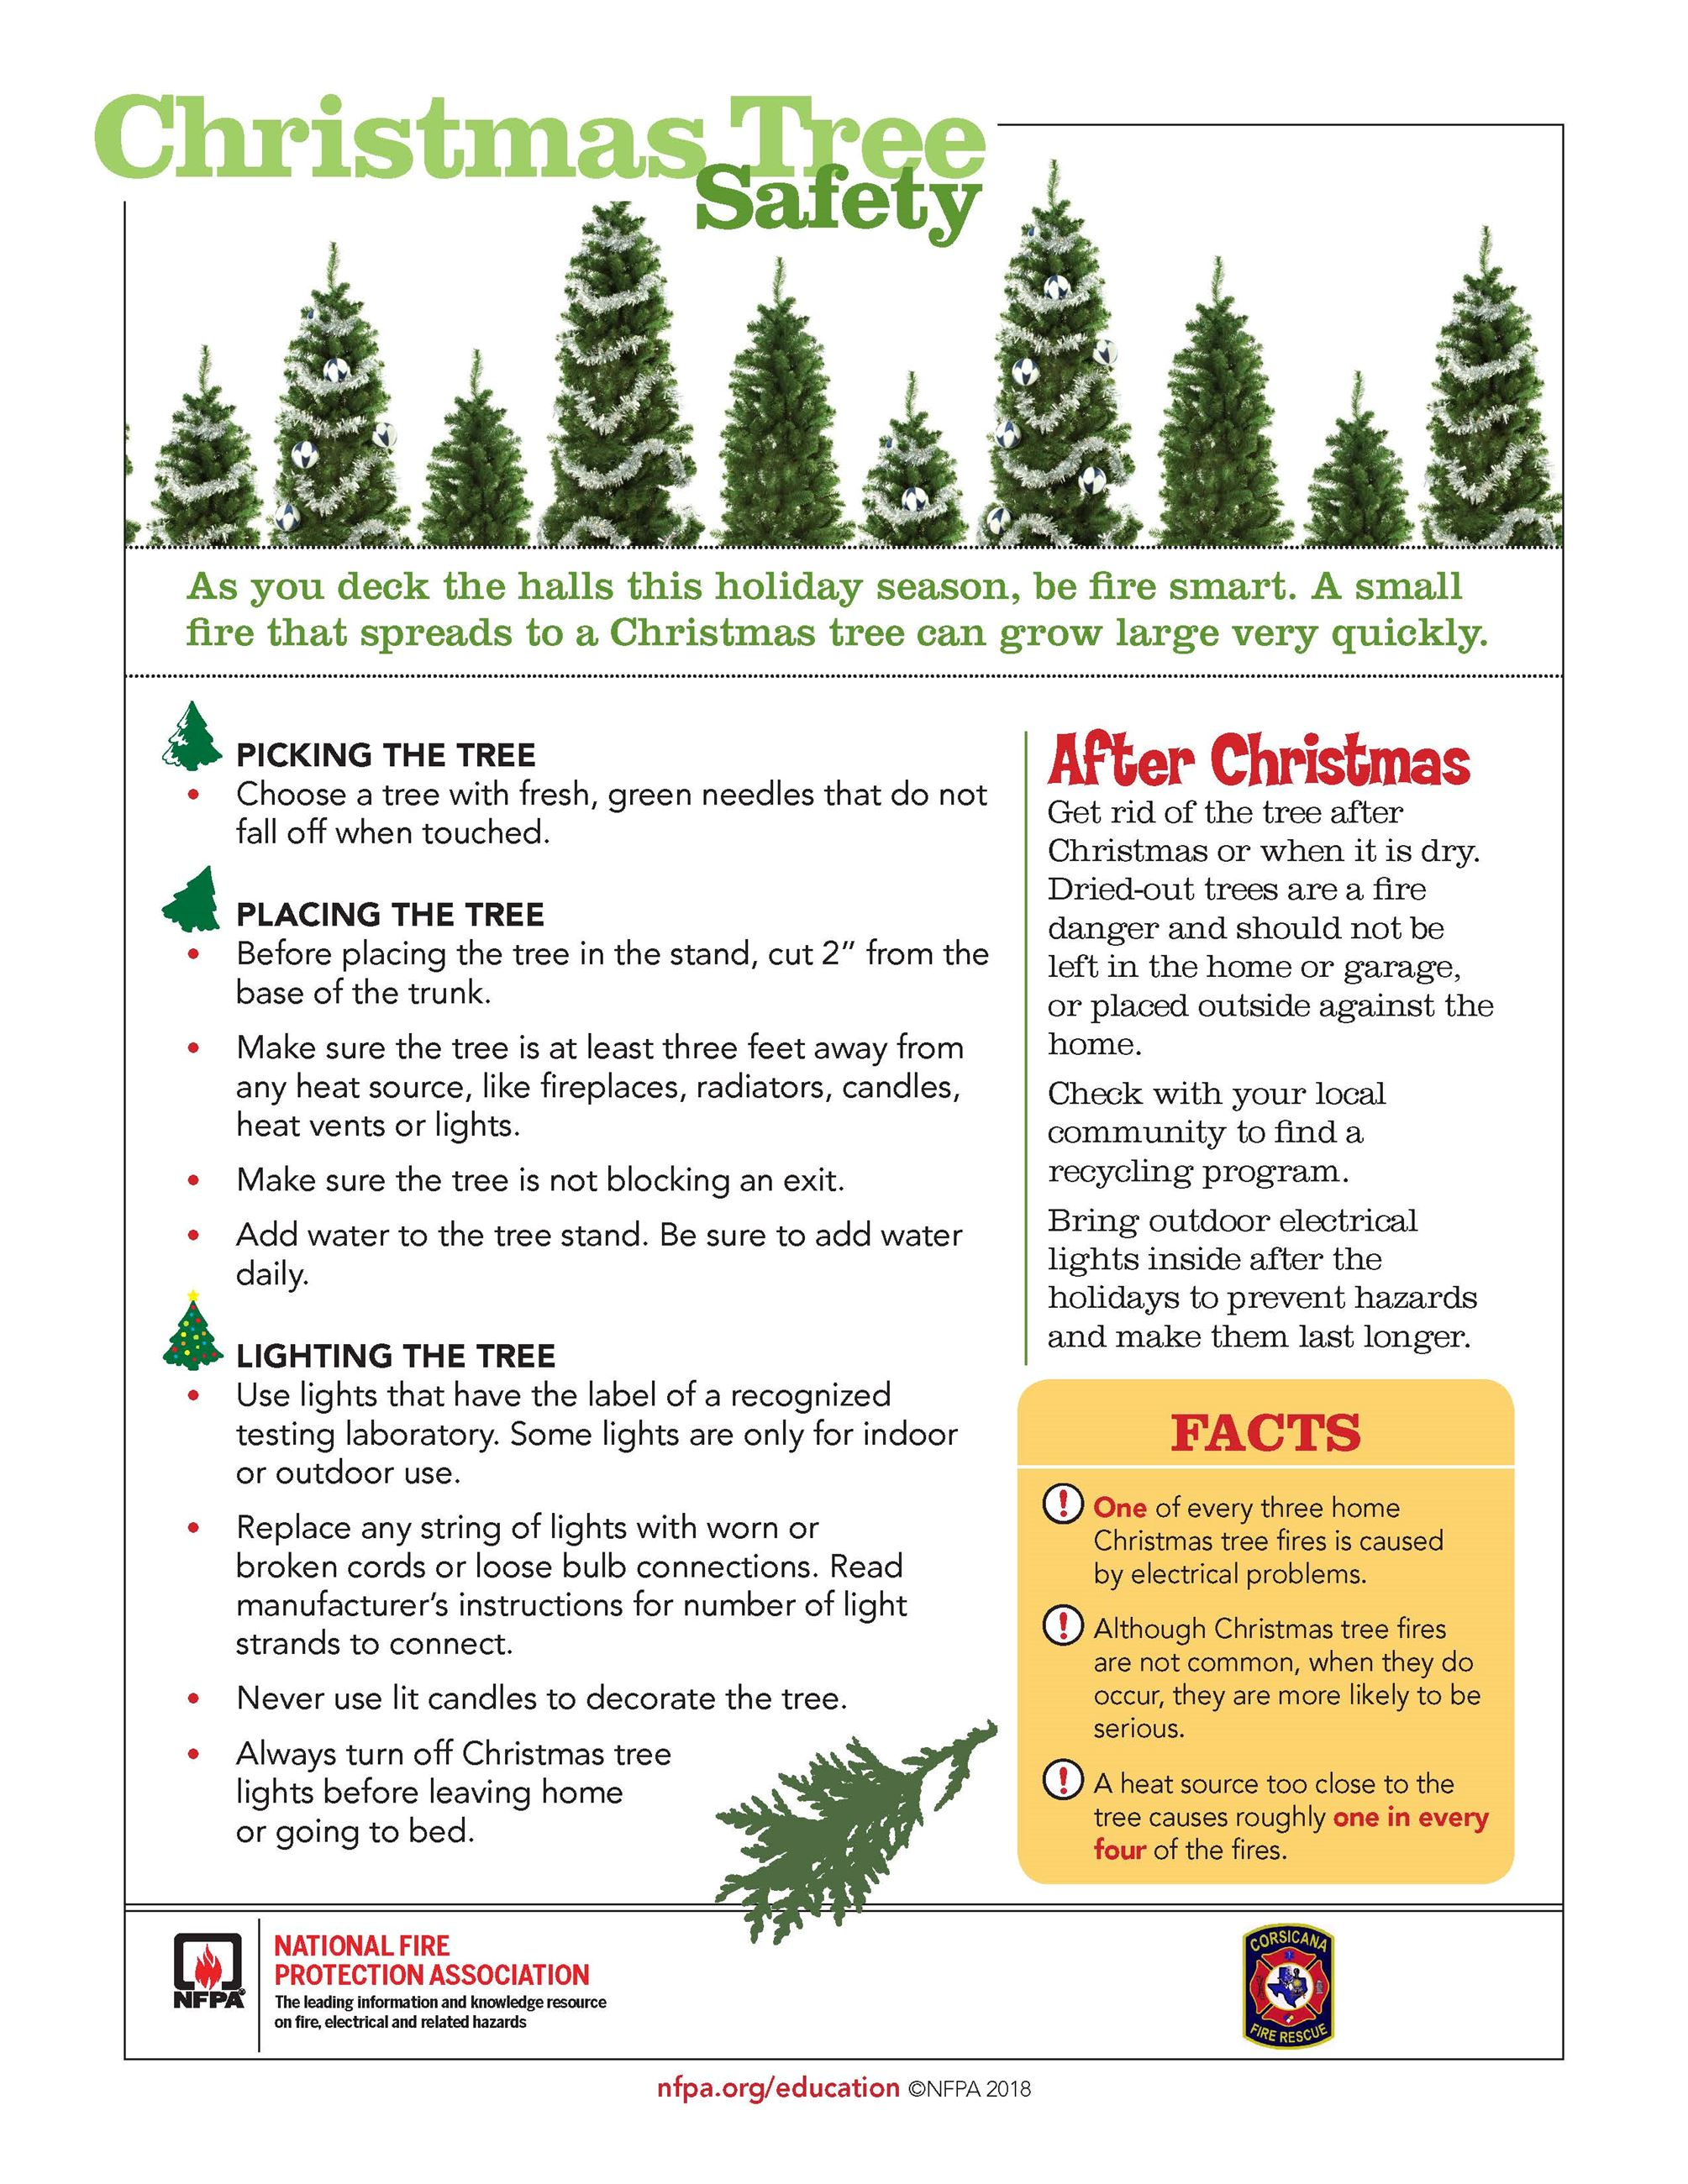 NFPA Christmas Tree Safety Tips